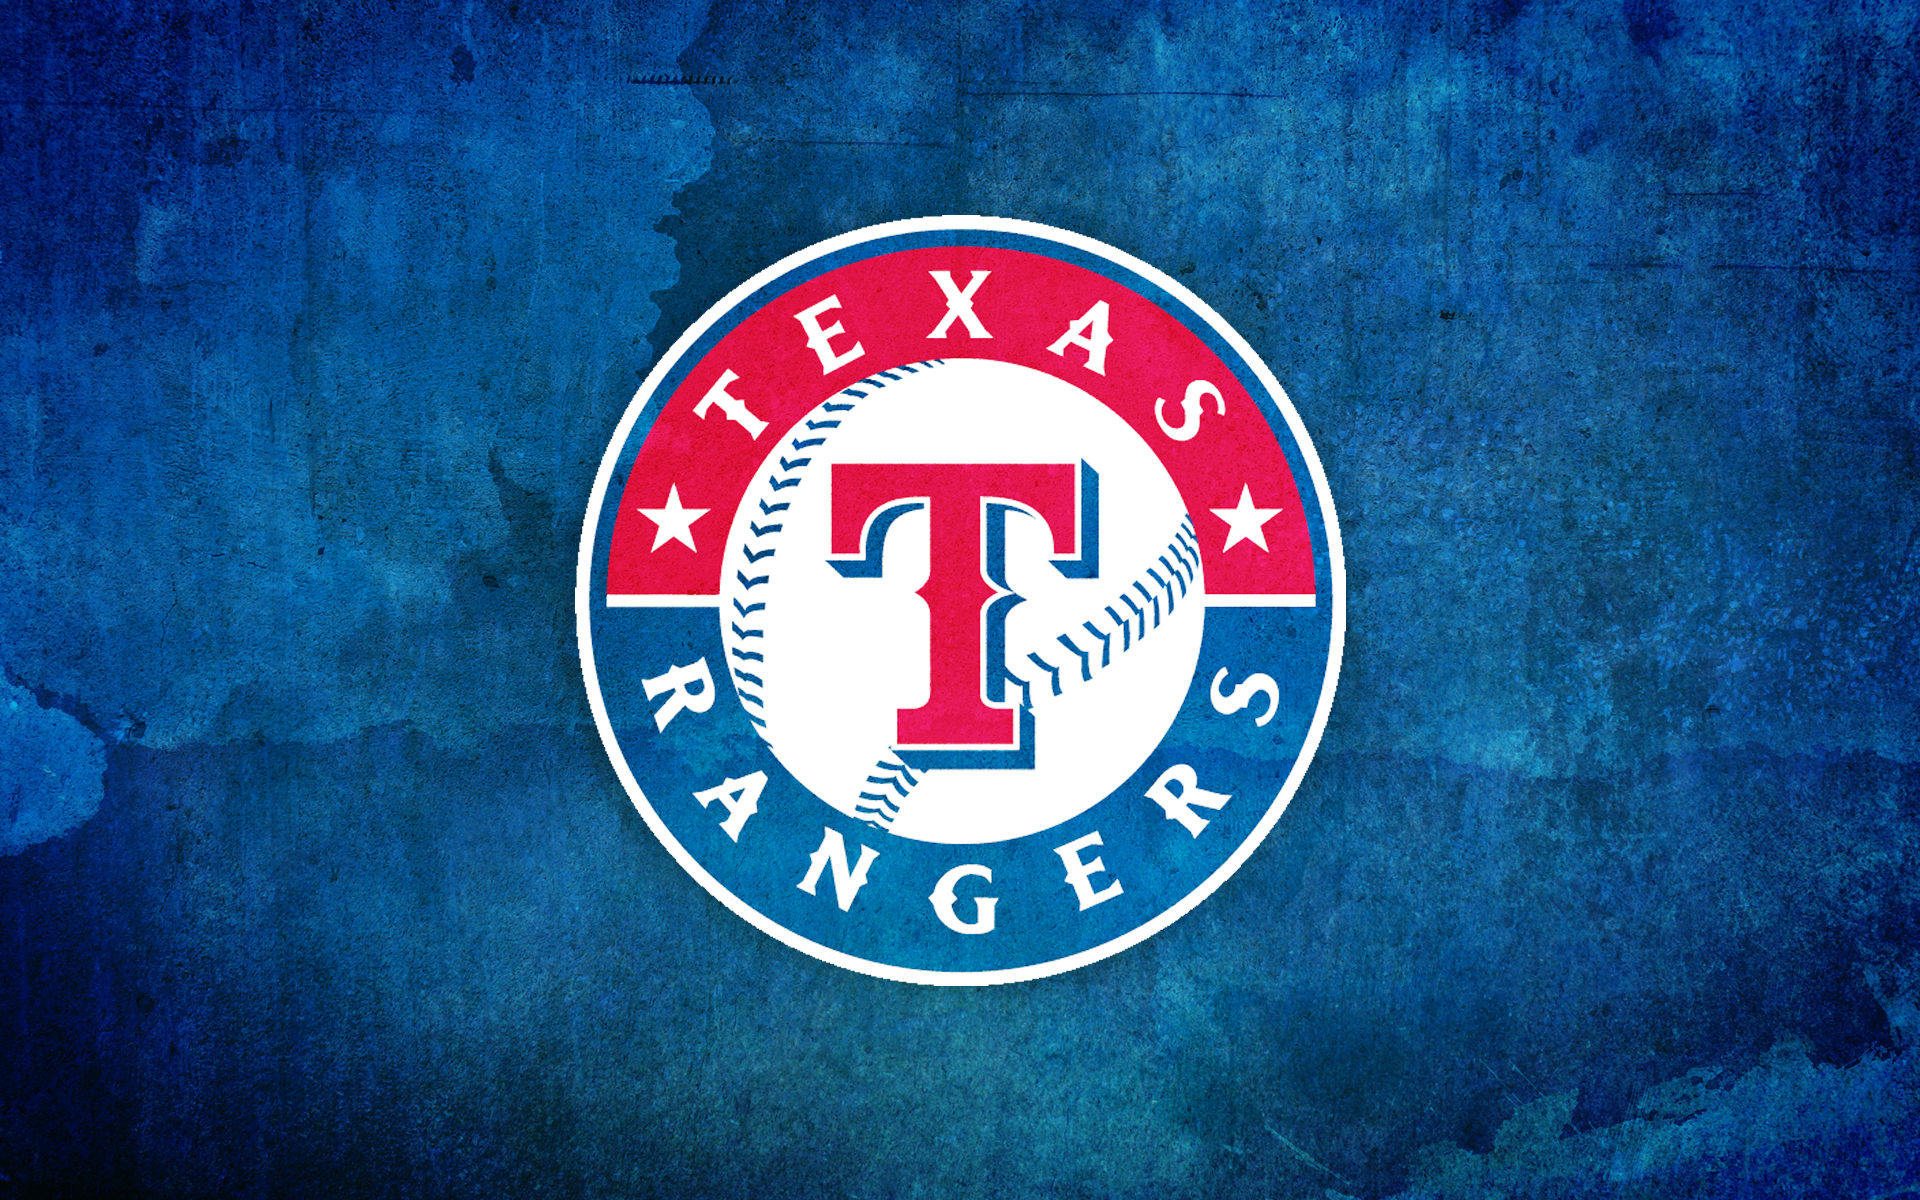 Texas Rangers Wallpaper